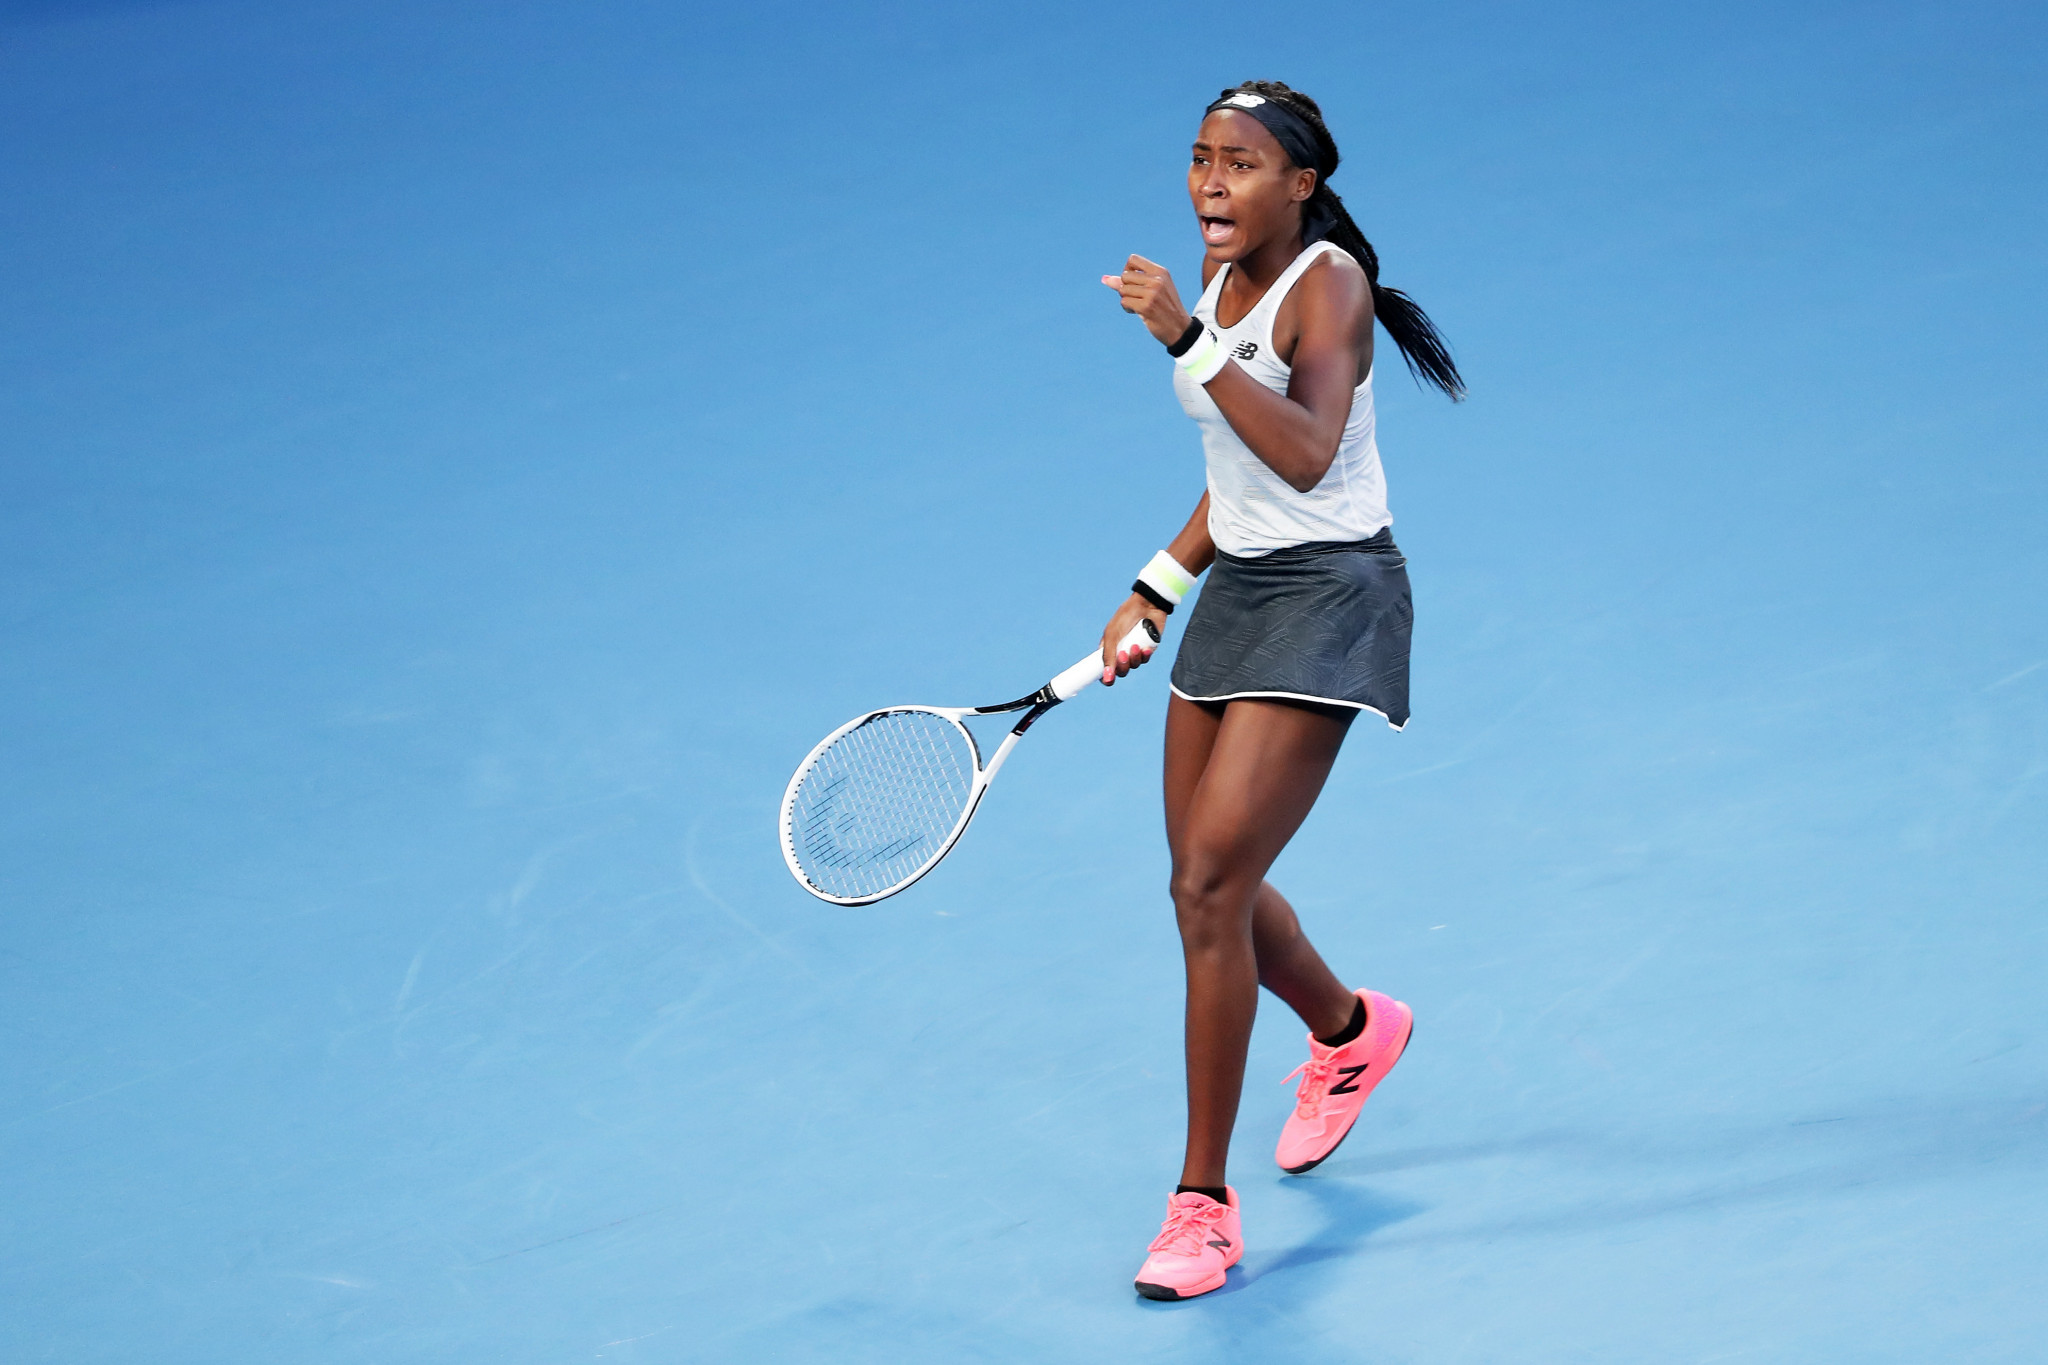 The 15-year-old Gauff was the victor, triumphing 6-3, 6-4 ©Getty Images